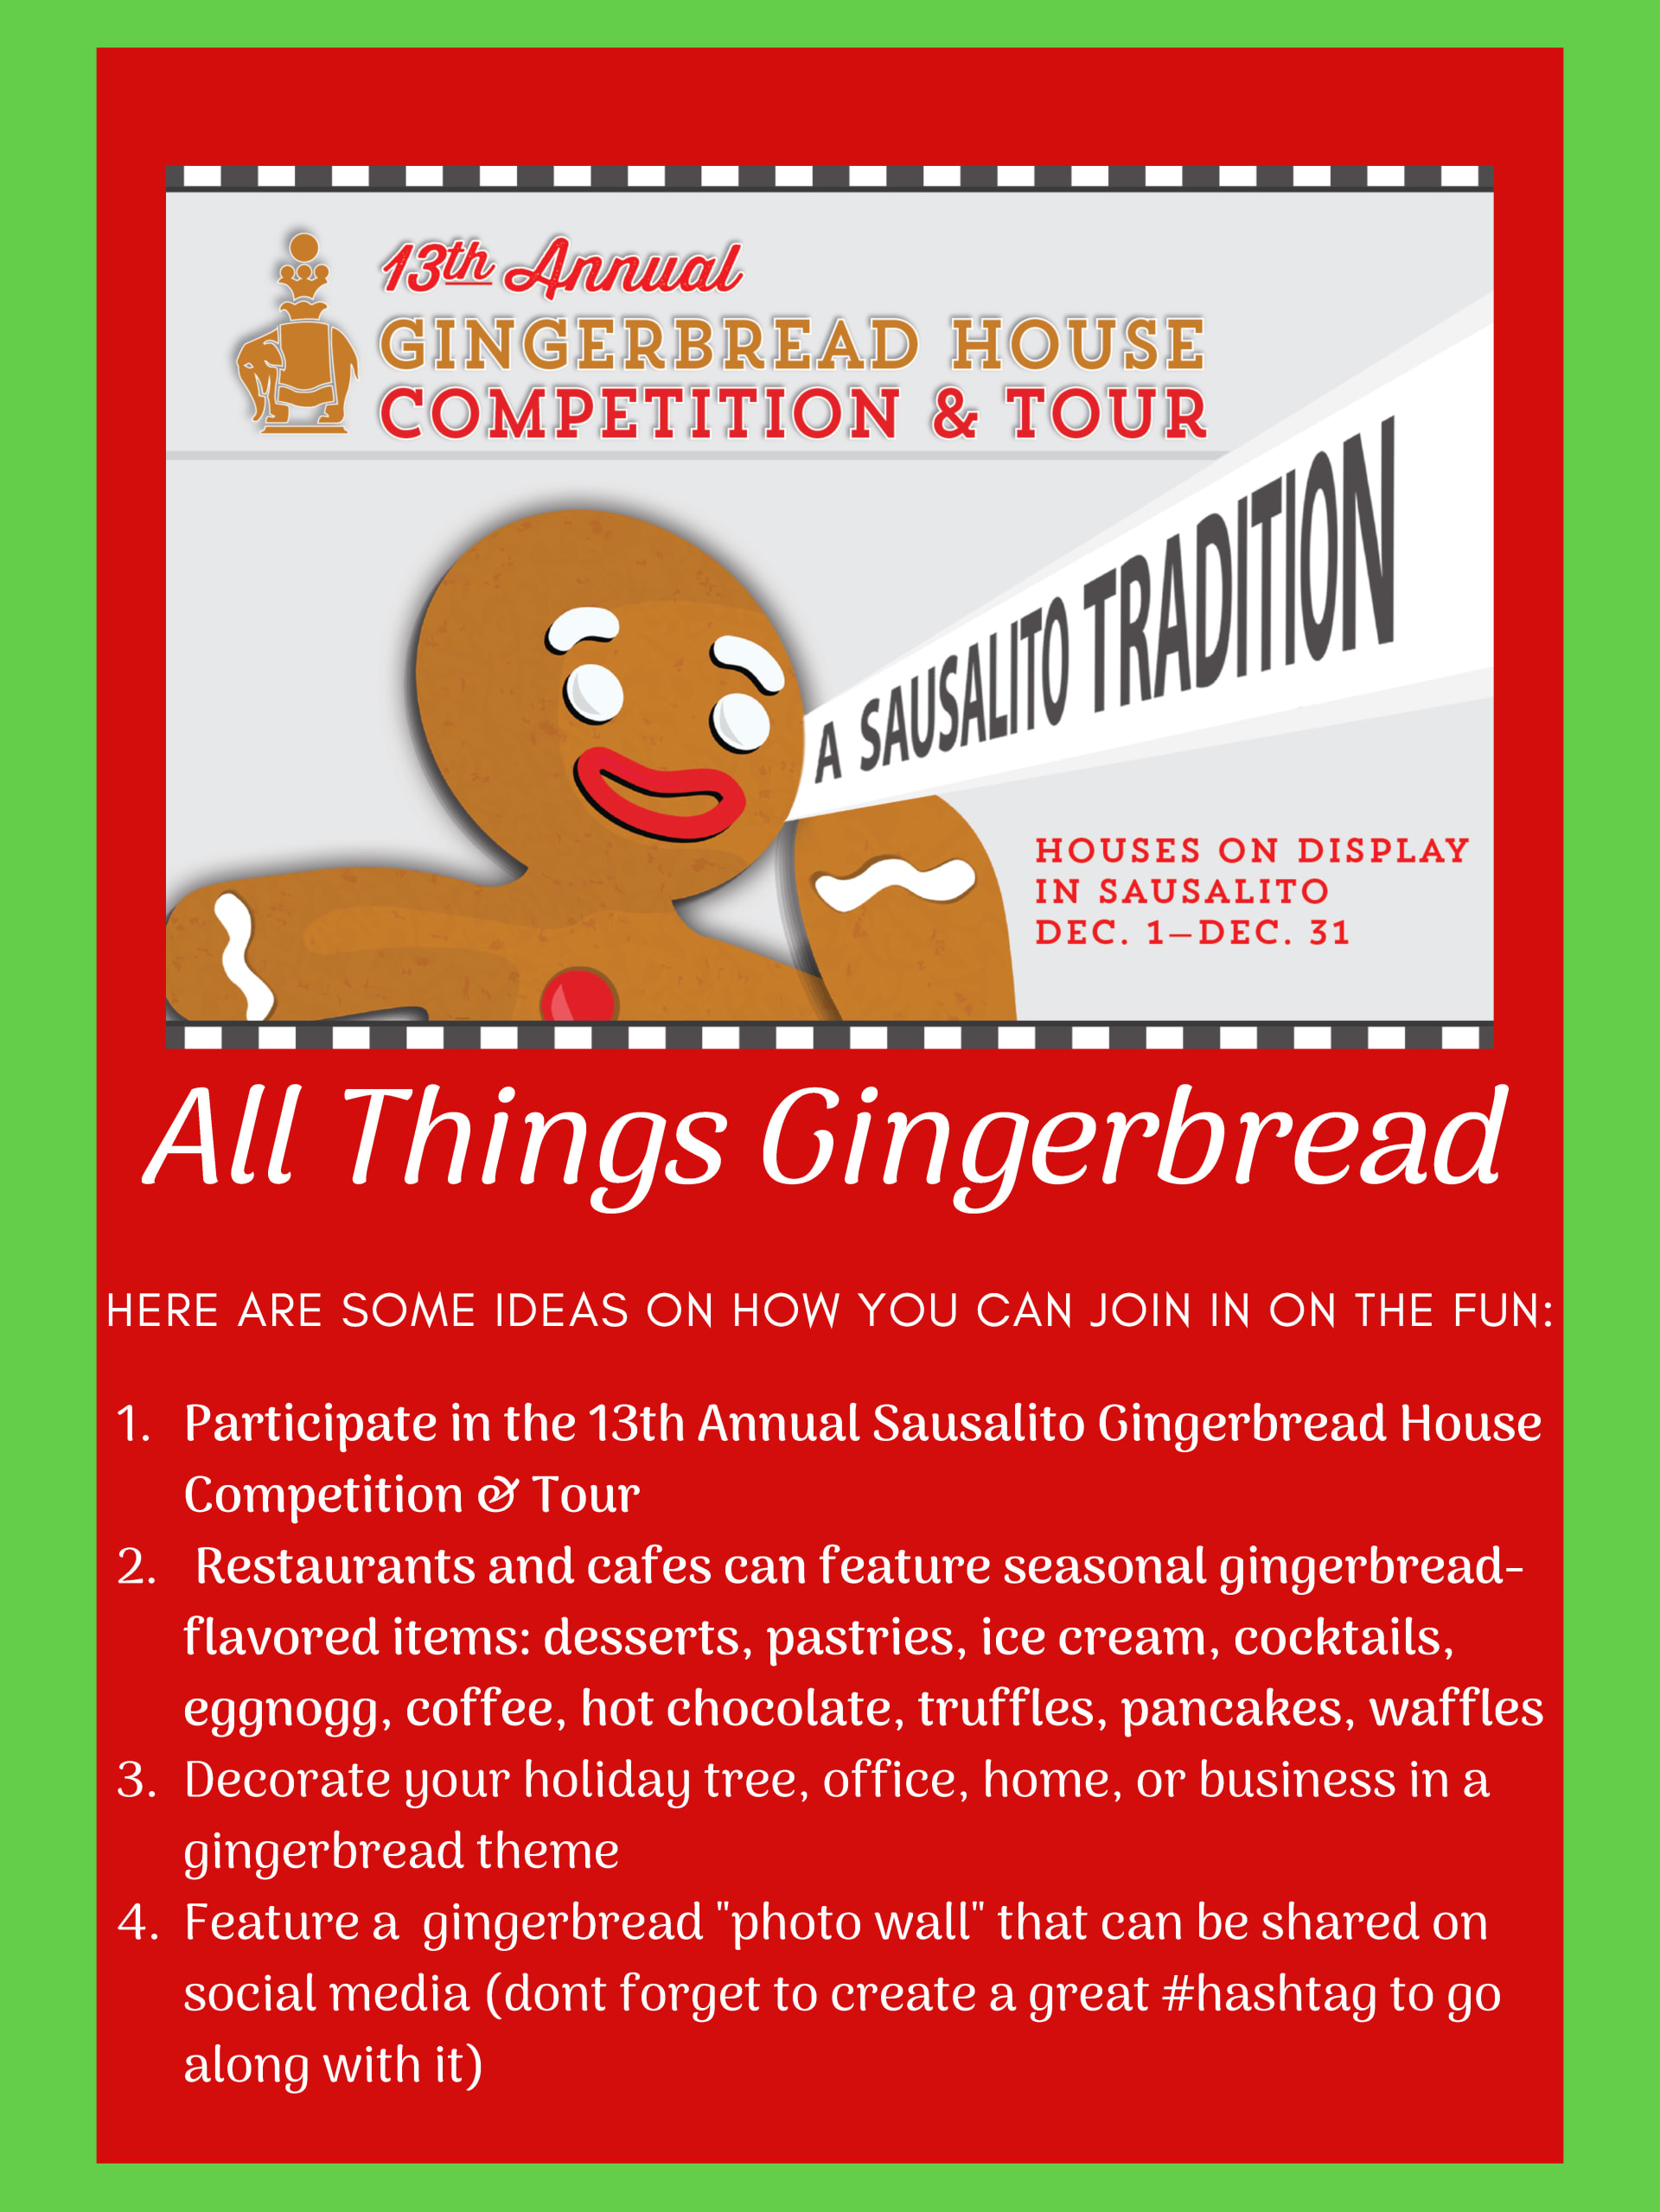 Sausalito Gingerbread House Tour Flyer 2019